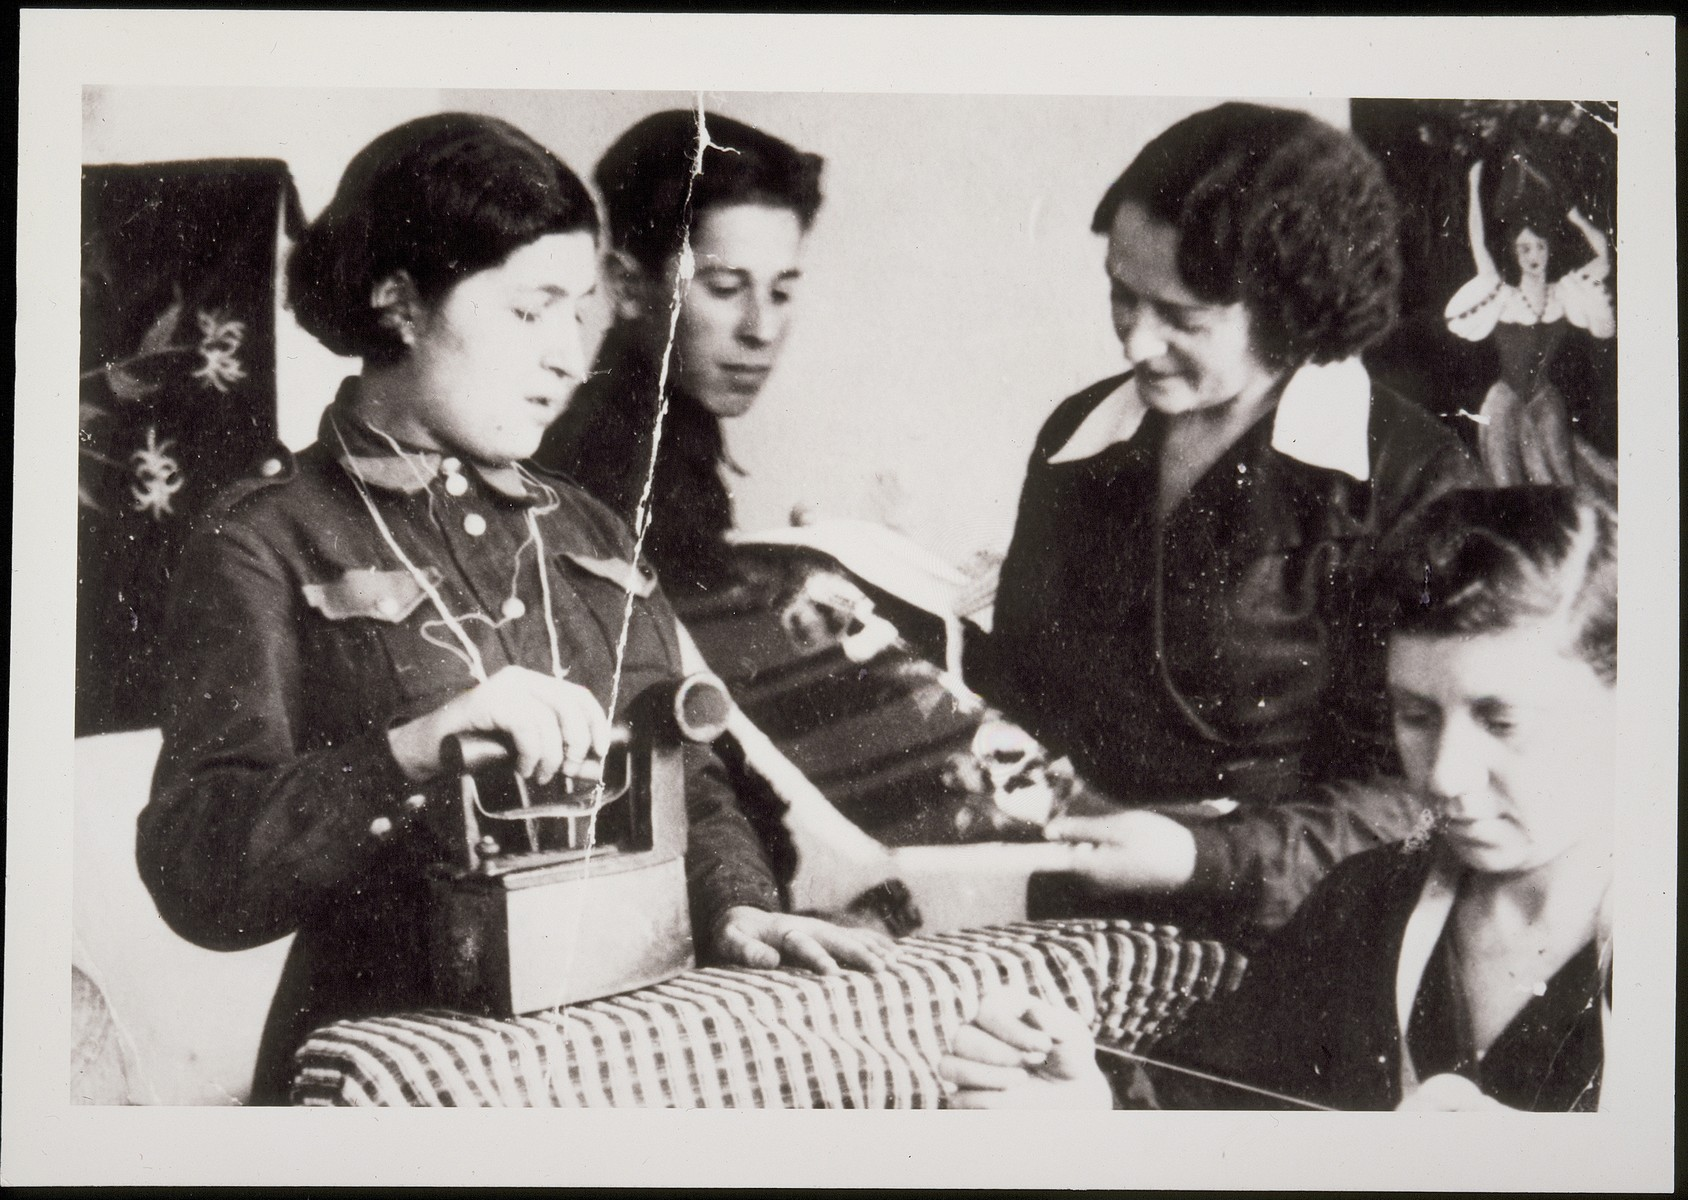 Rochel Szulkin, instructs two young apprentices in her sewing workshop in Eisiskes.  Pictured are Rochel Szulkin (standing on the right) with Hayyim Yoshke Bielicki (second from the left) and Gitta Politacki Ginsberg (wearing the Betar uniform).  Hayyim Yoshke and Gitta survived the war in the Soviet Union; the others were killed in the September 1941 massacre in Eisiskes.